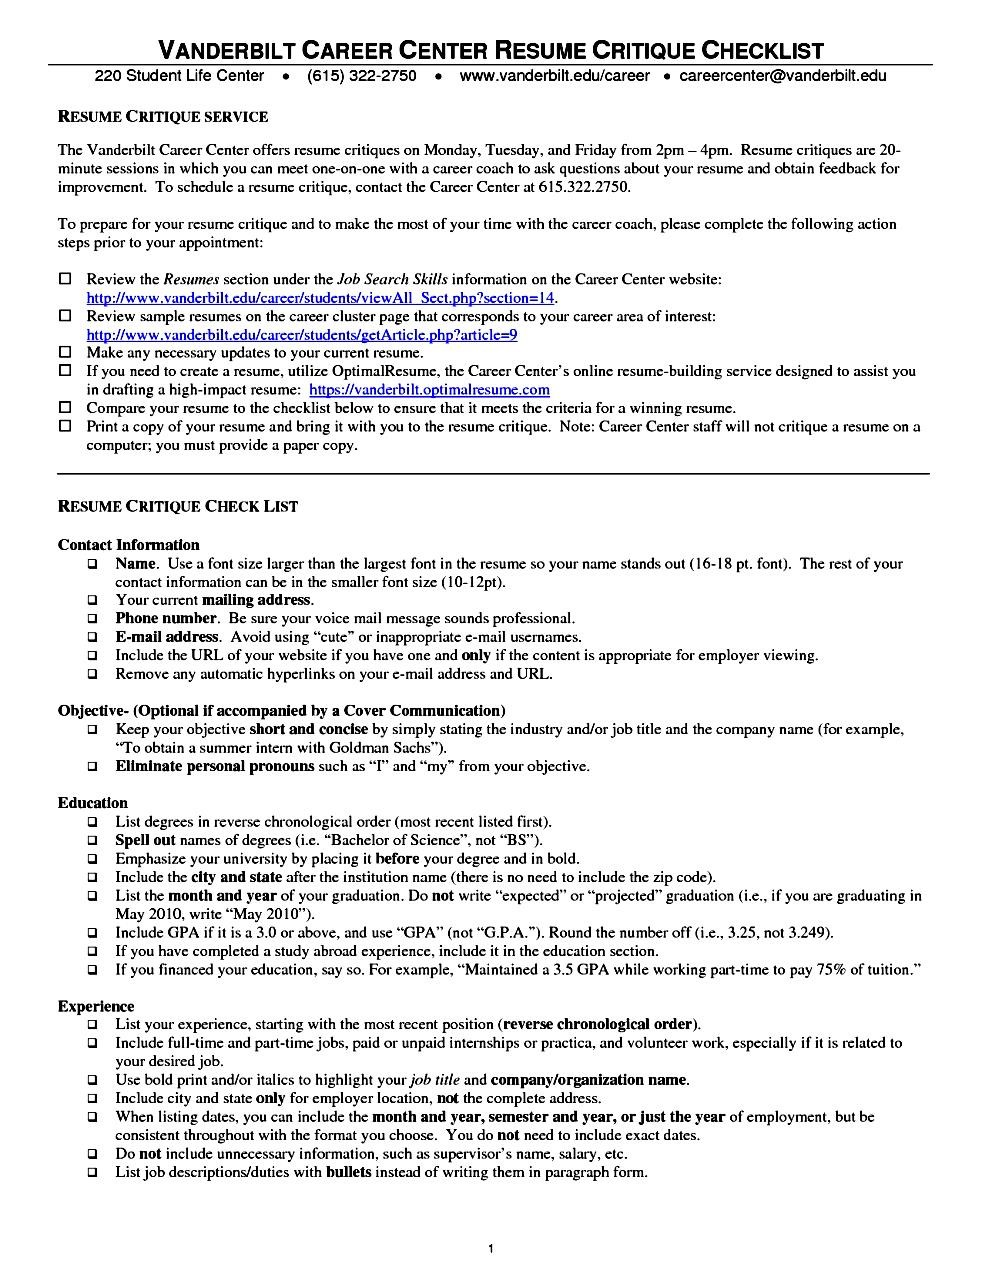 functional resume librarian sample customer service resume functional resume librarian librarian resume sample writing guide rg resume template for grad school samples examples